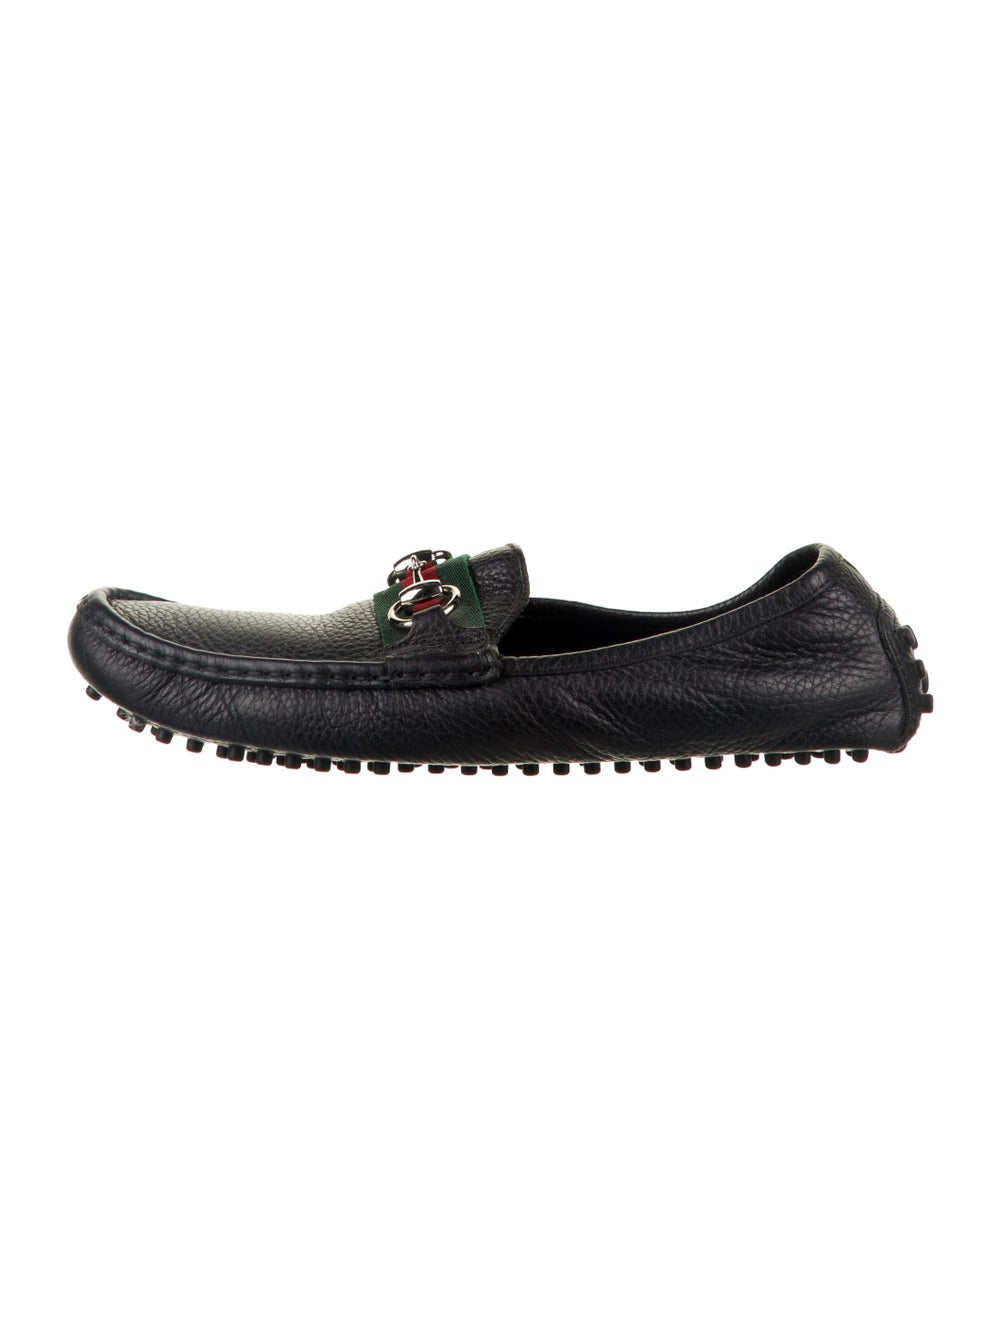 Gucci Web Accent Leather Loafers Black - image 1